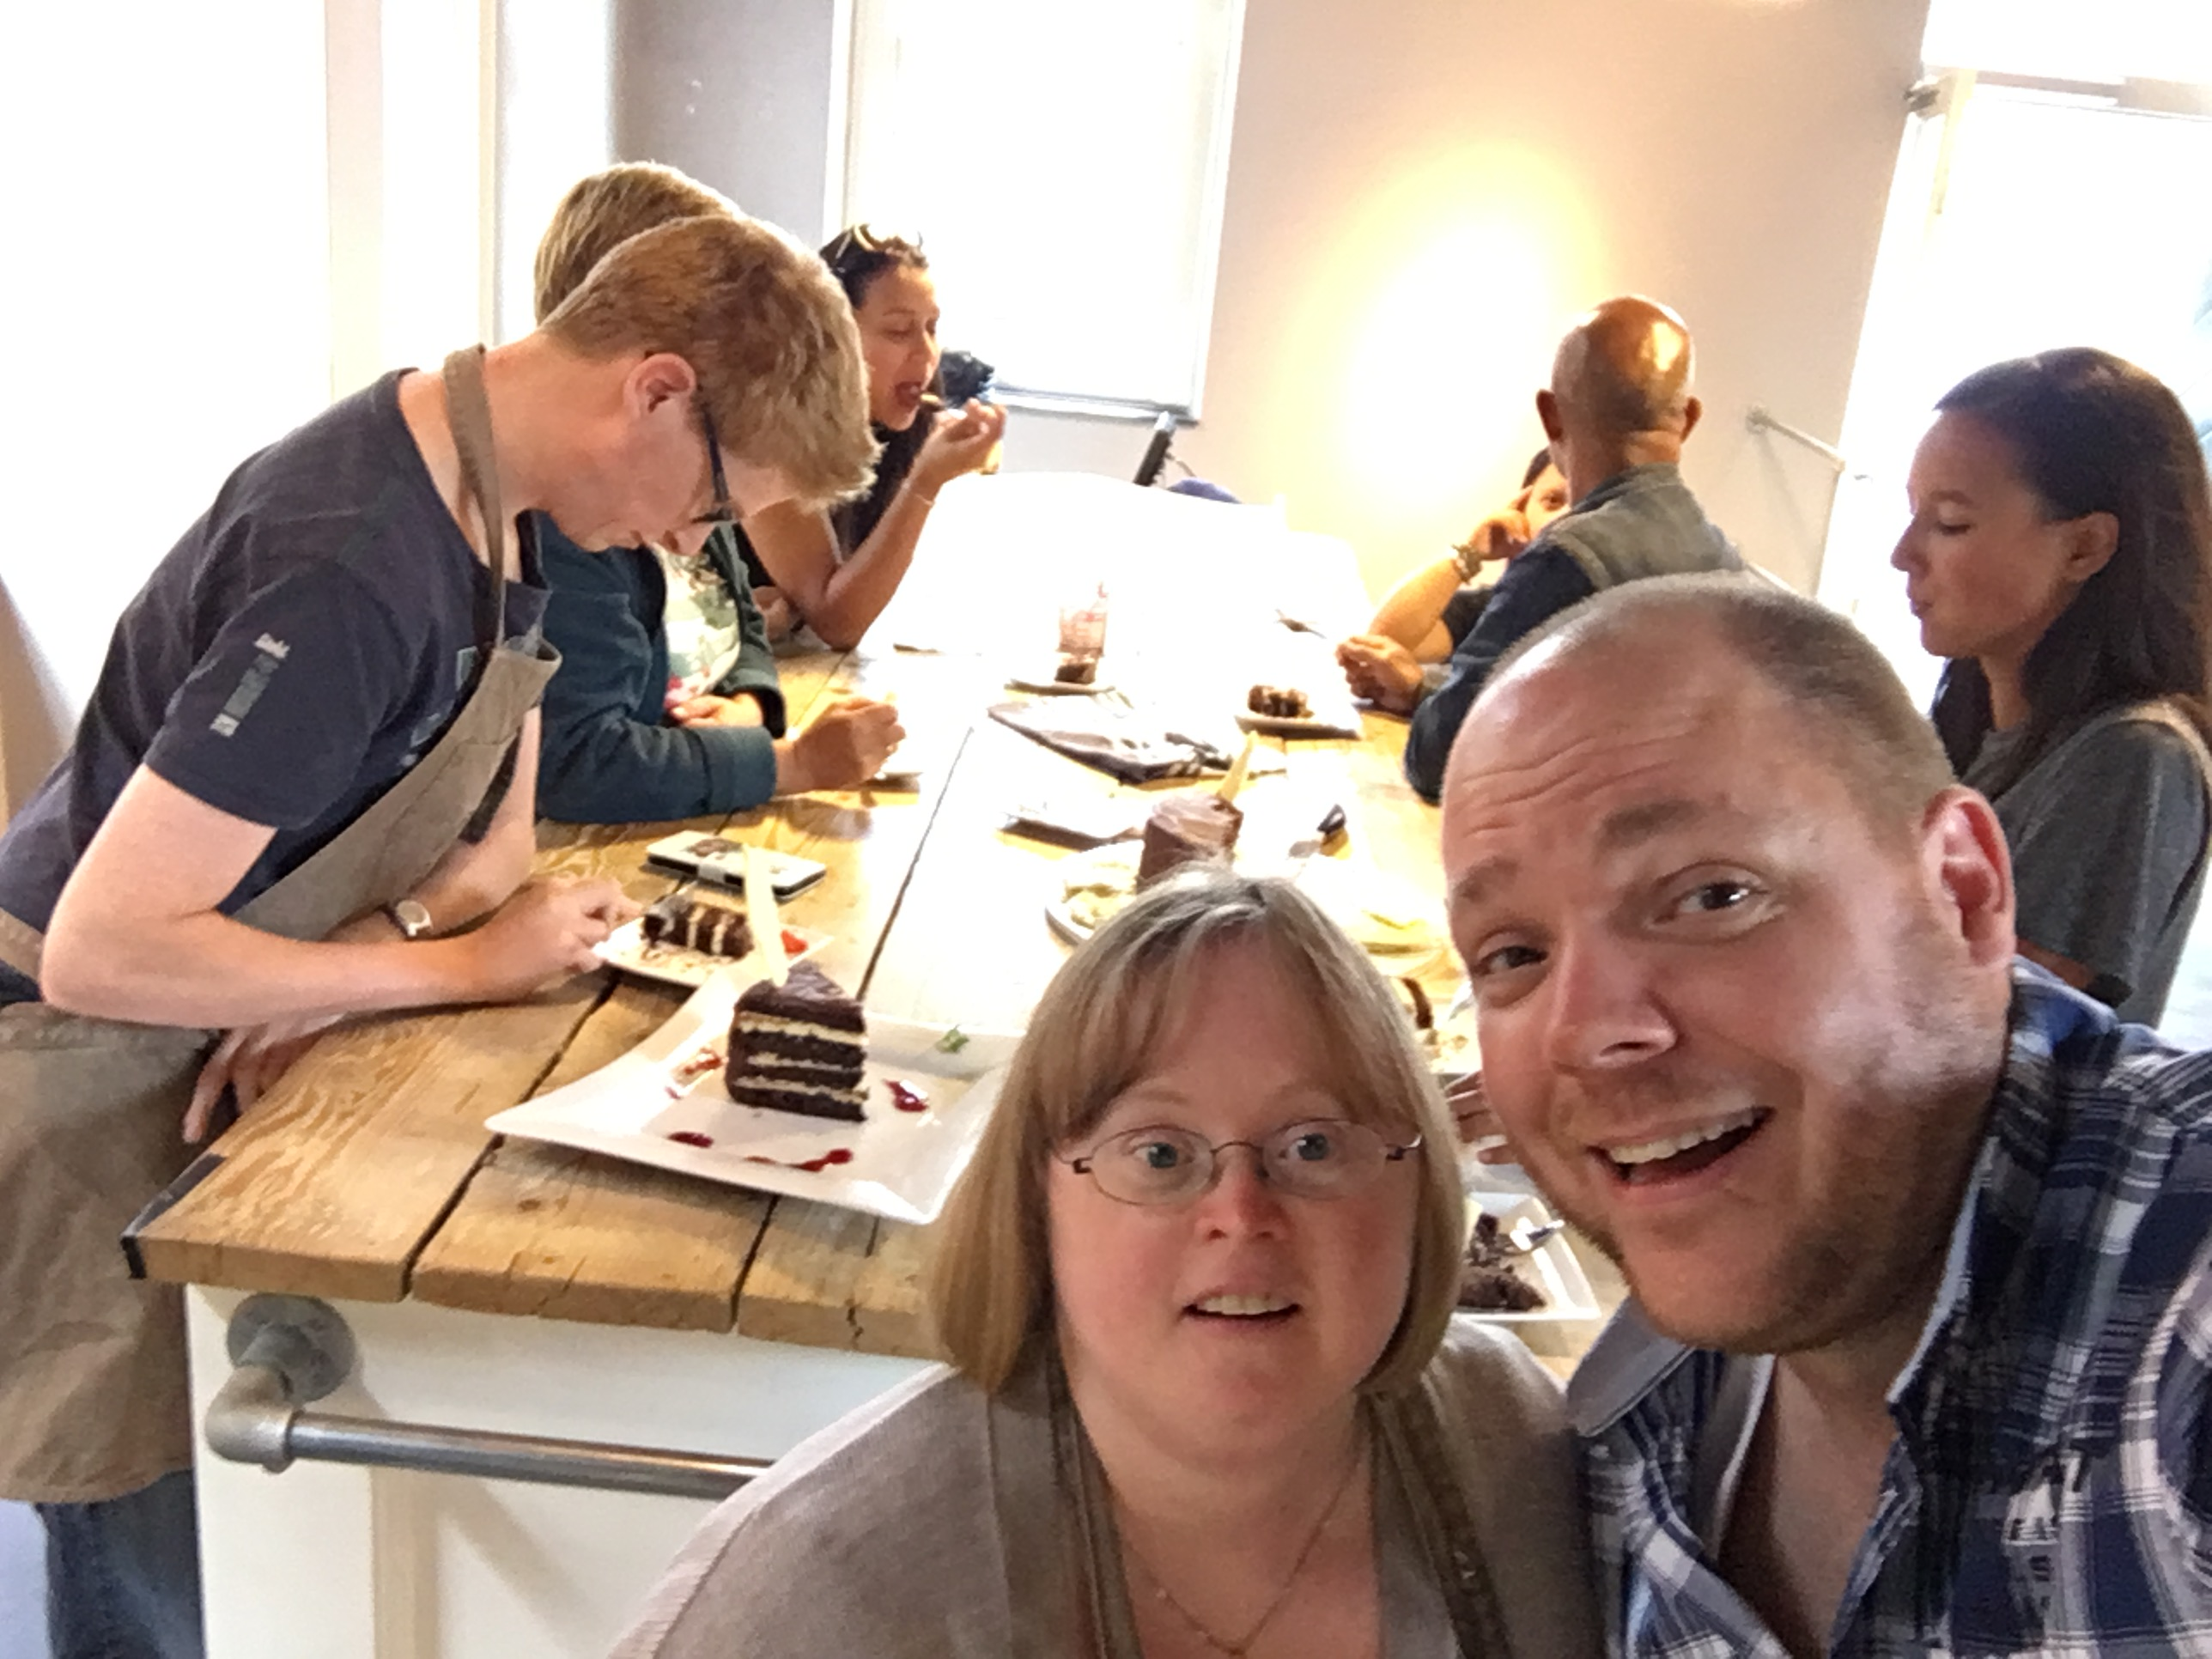 Downies In De Keuken Brownies Downies Opent Met 53 500 Via Crowdfunding Collin